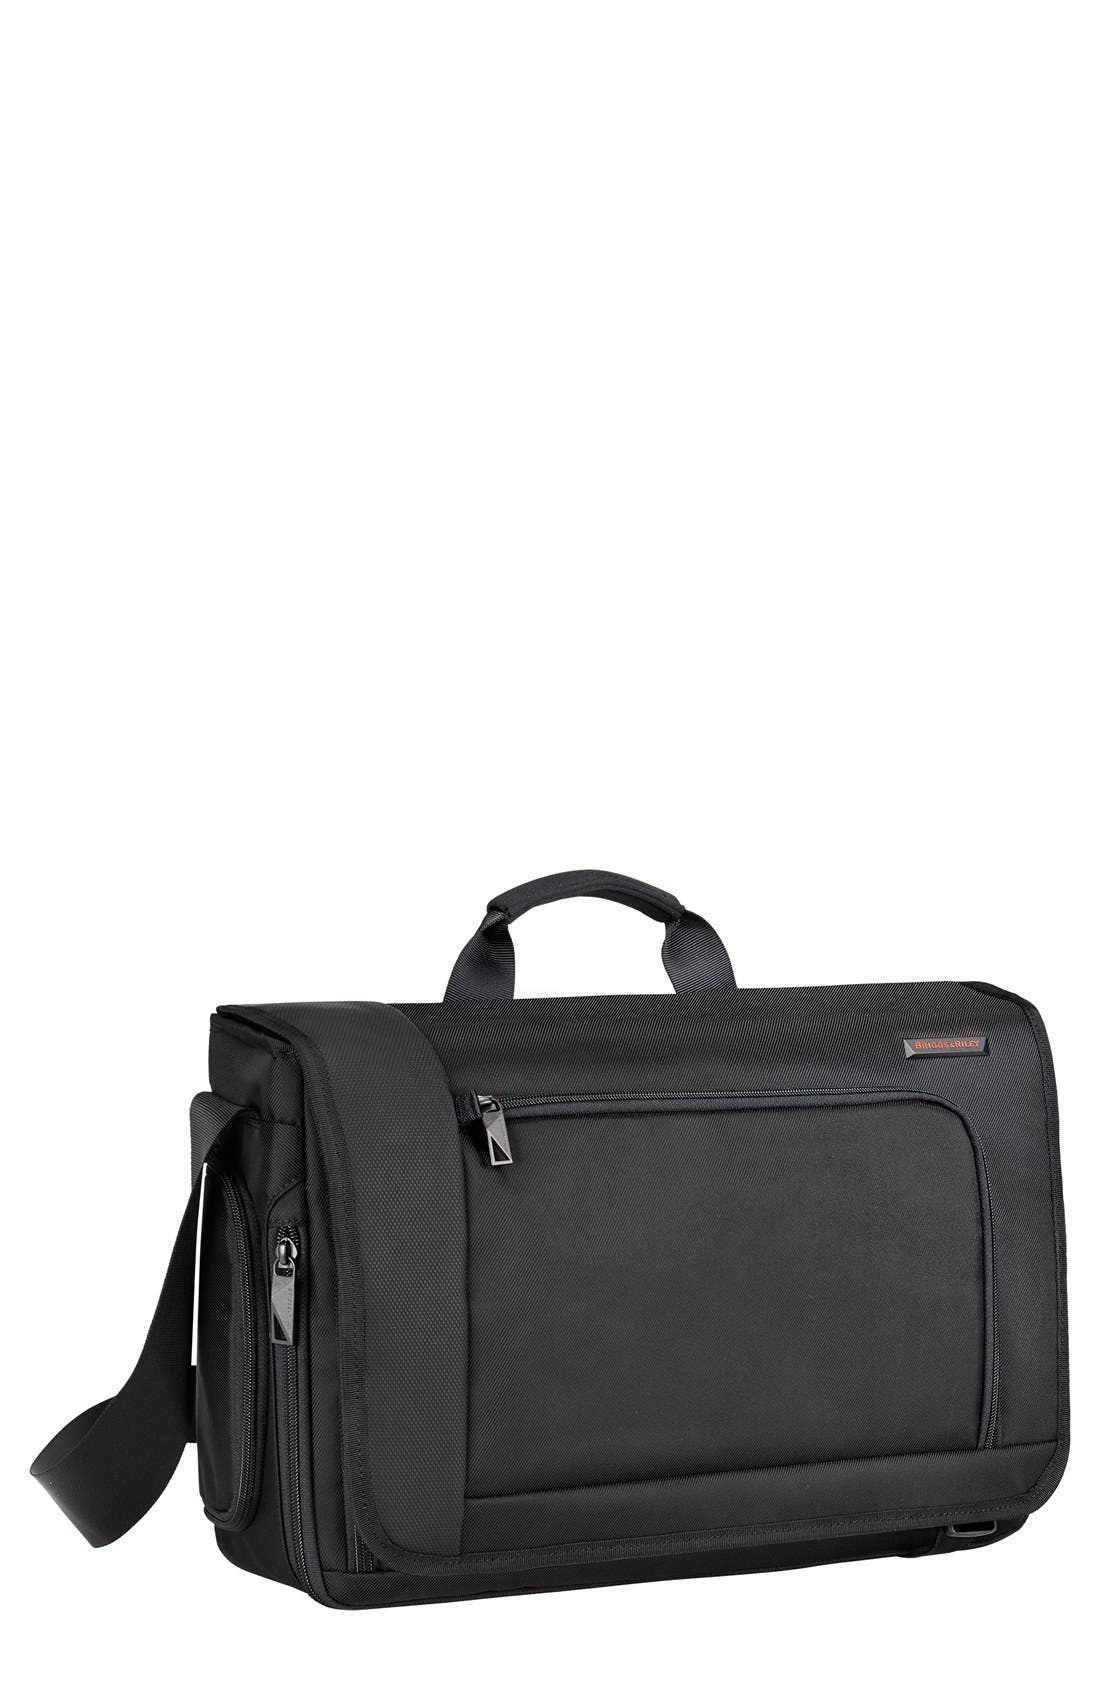 'Verb - Dispatch' Messenger Bag,                         Main,                         color, BLACK